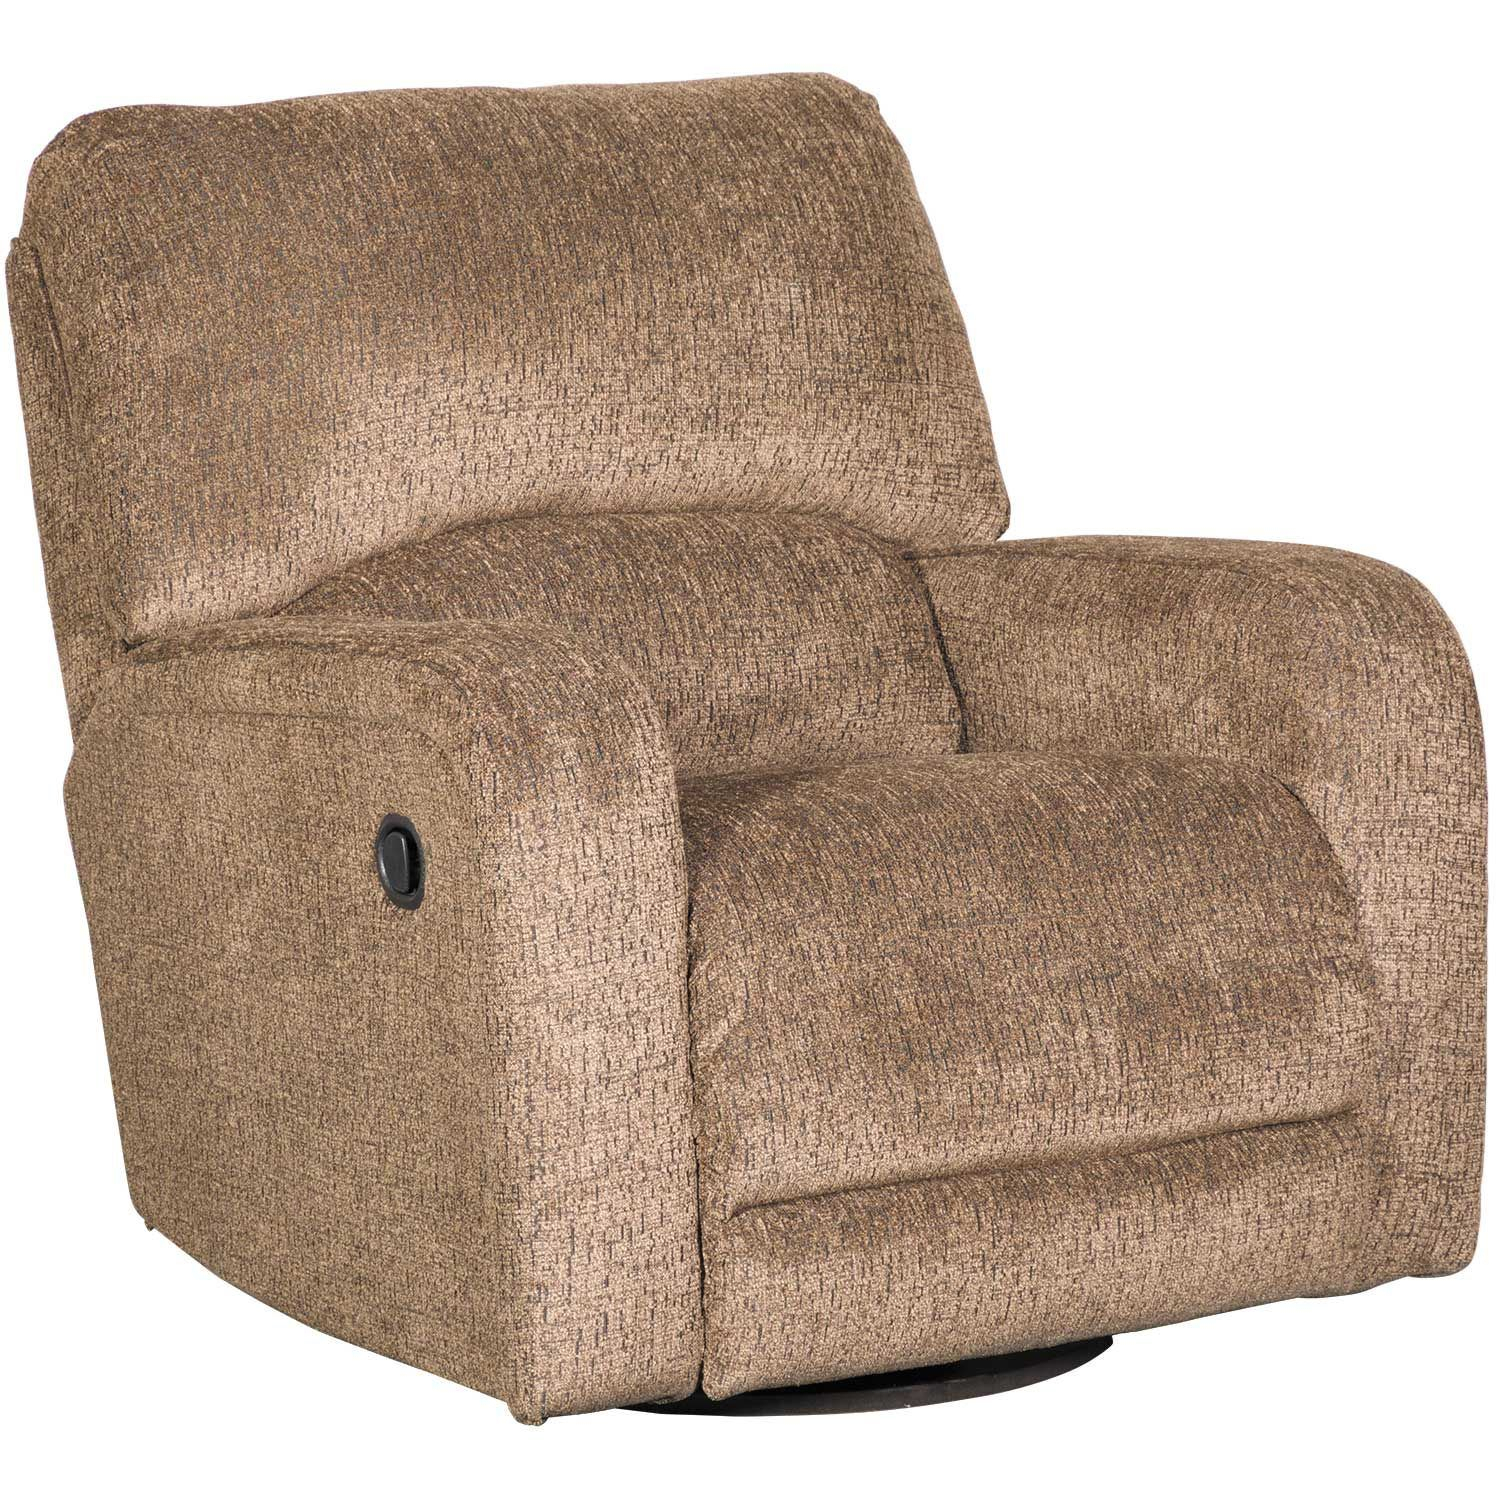 Wittlich Umber Swivel Glider Recliner | 5690261 | Ashley Furniture | Afw In Umber Grey Swivel Accent Chairs (View 10 of 25)